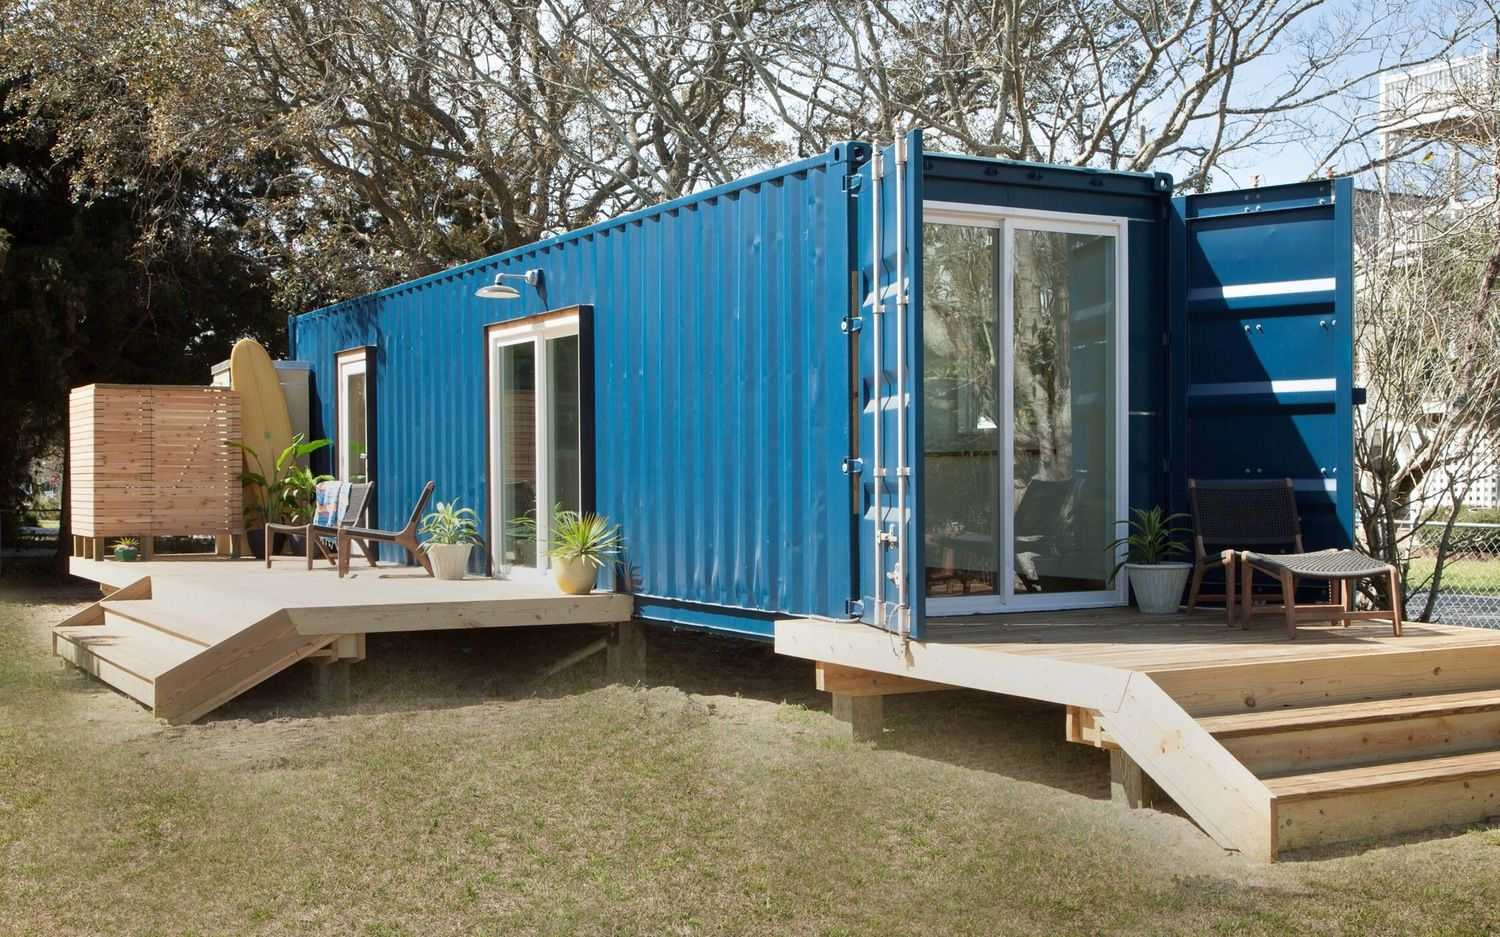 Shipping Container Turned Modern Beach Home Container House Container House Plans Shipping Container Home Designs